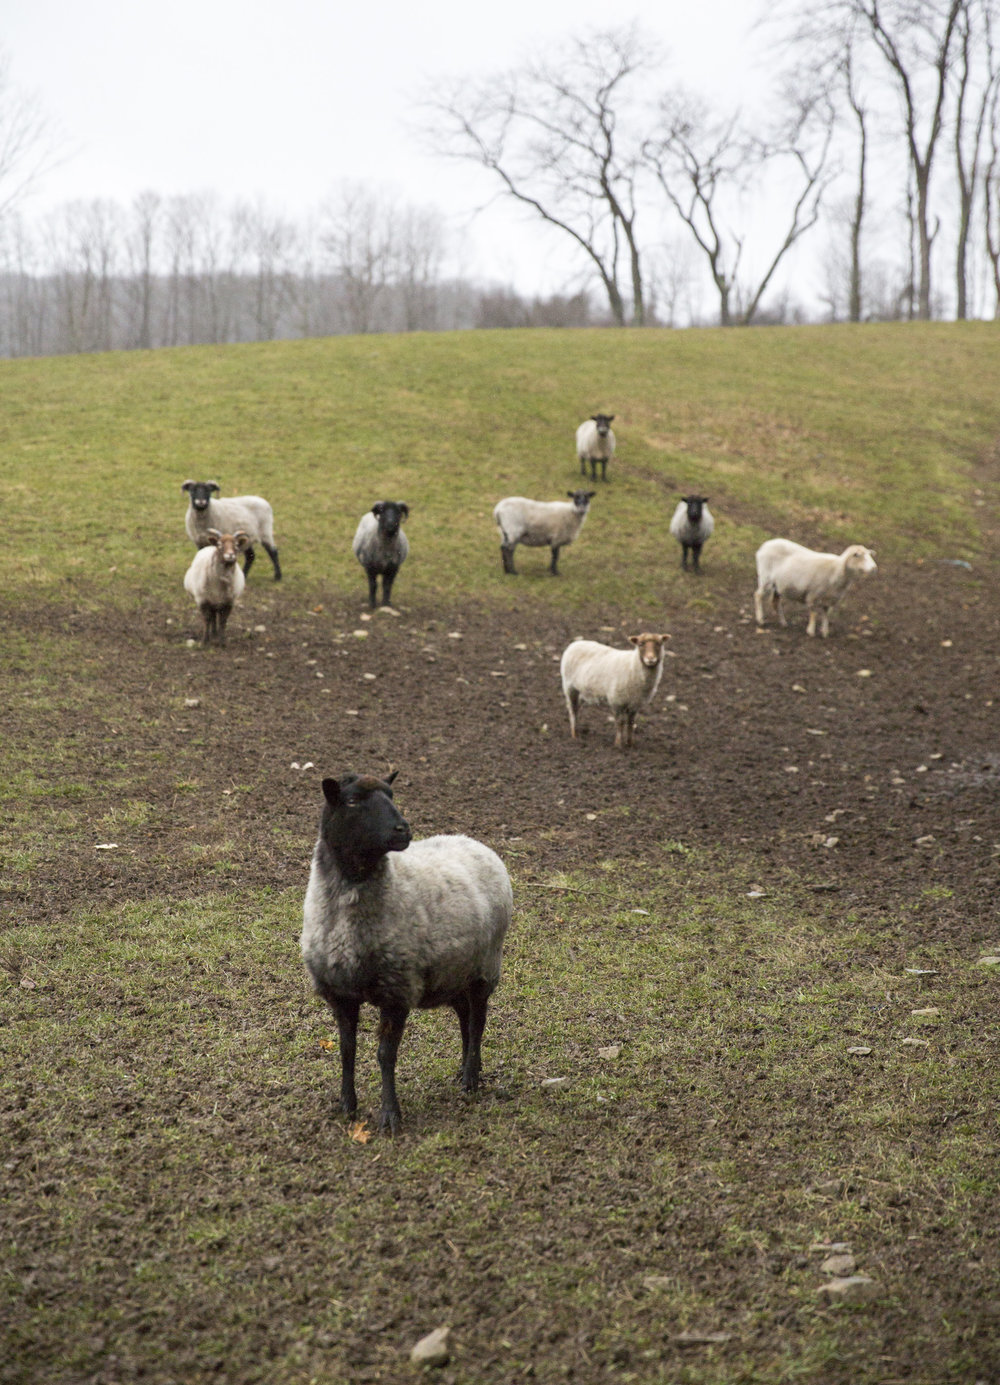 sheep_farmer_doumentary_photographer_beau_kester-19.jpg